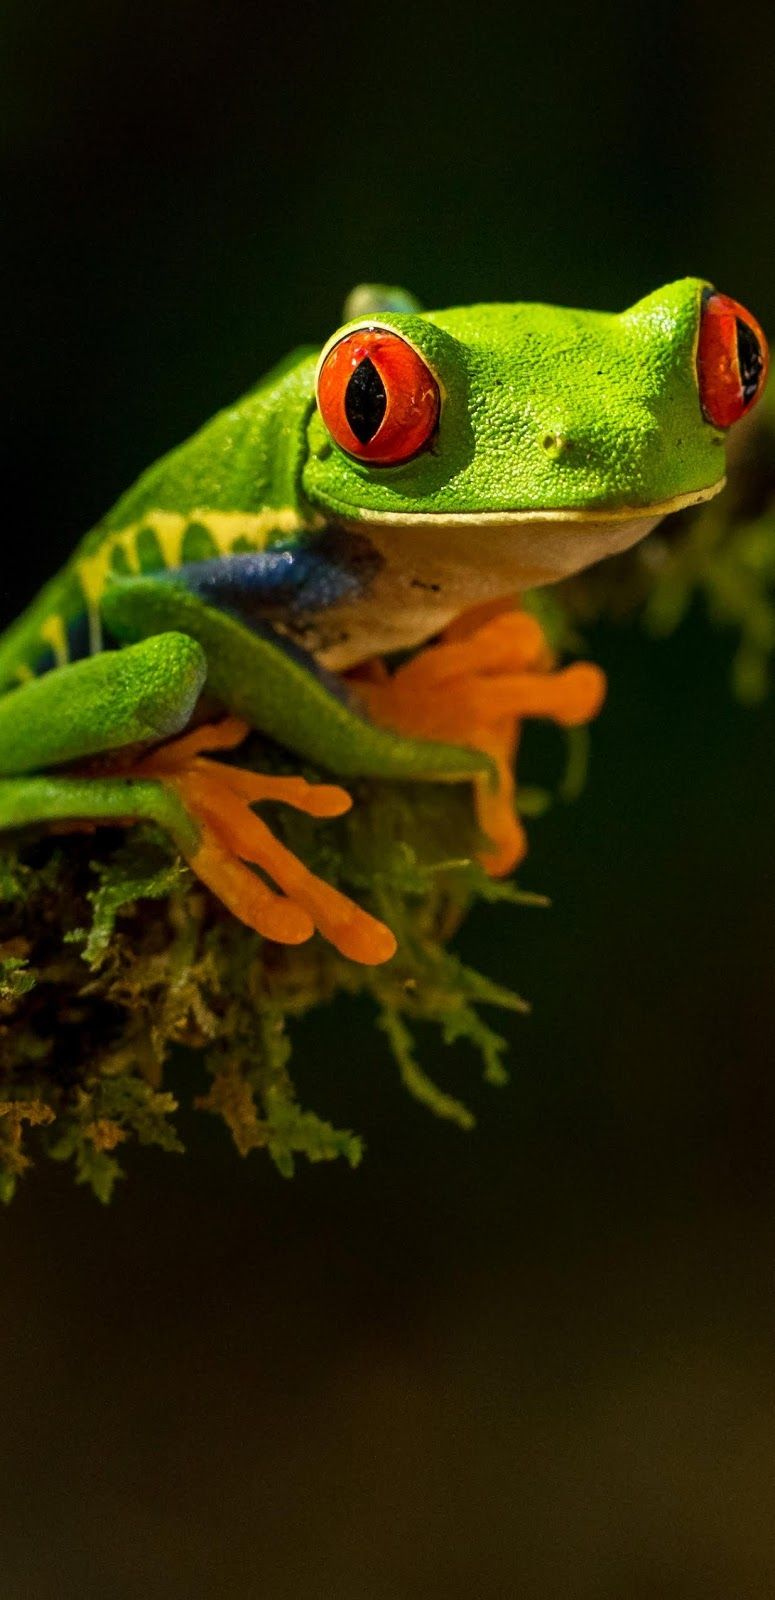 A tree frog's amazing red eyes. #Tree #Frog #Amphibians #Animals #Red #Eyes